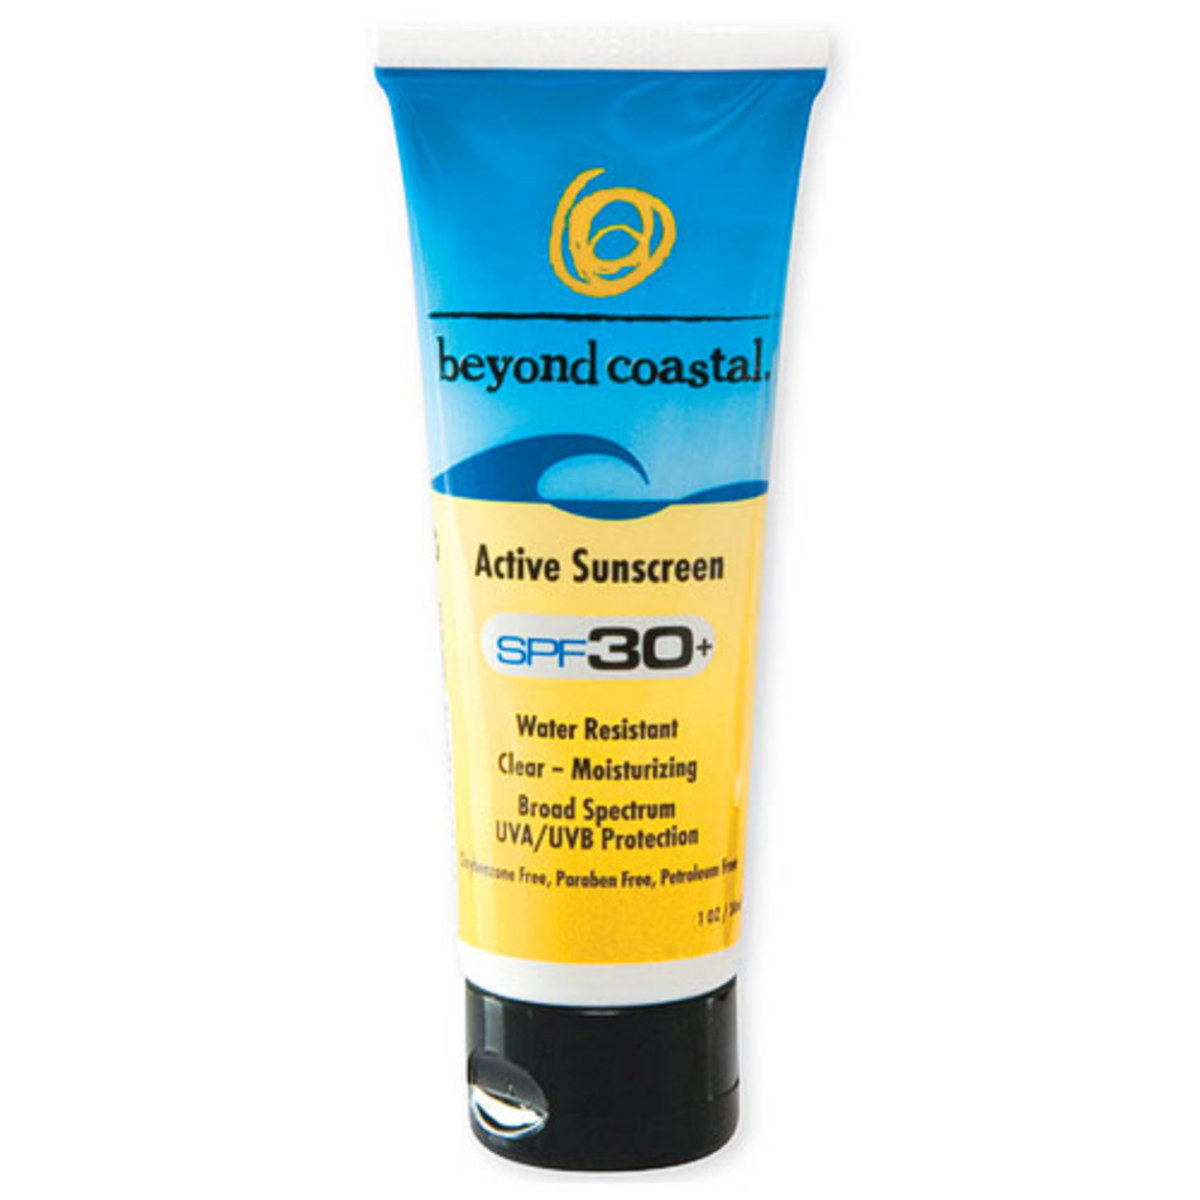 Beyond Coastal Active Sunscreen SPF 30 1oz